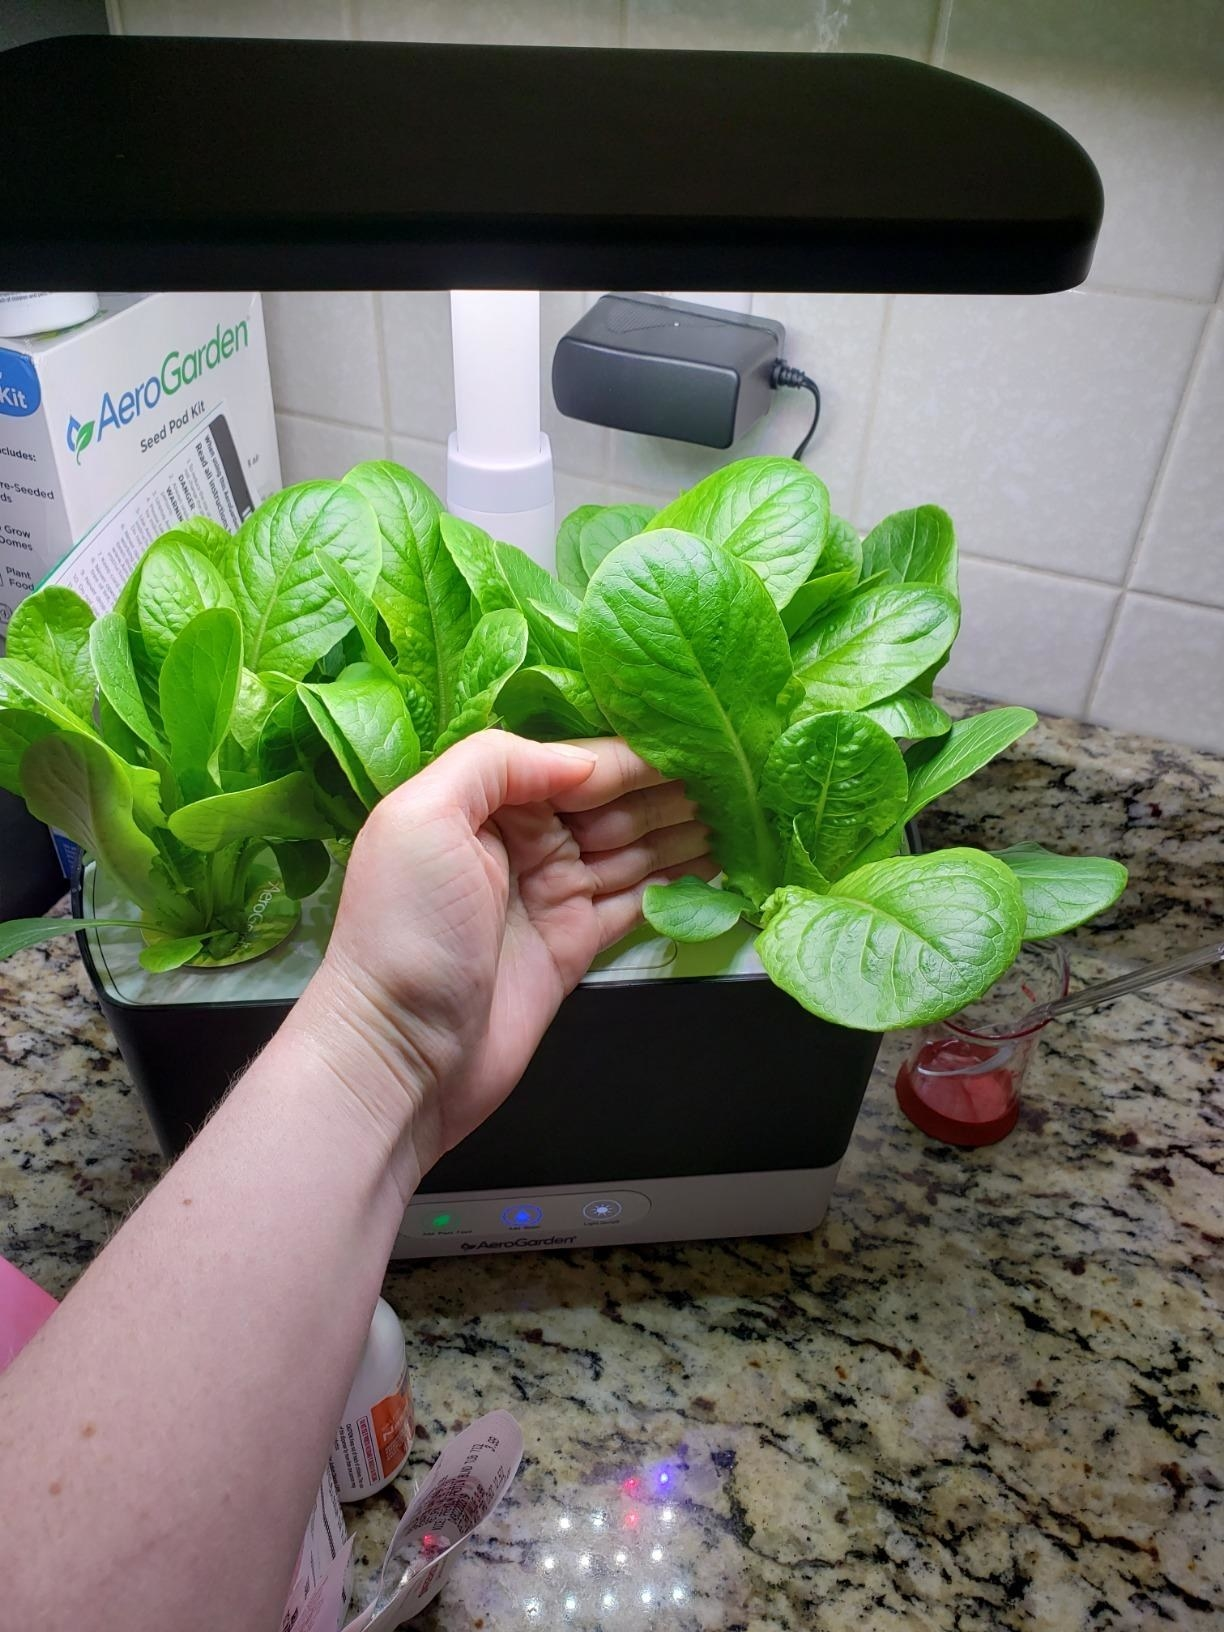 Reviewer pic of the black Aerogarden on a counter with lettuce leaves growing in it and their hand on one of the leaves, showing how big it's growing